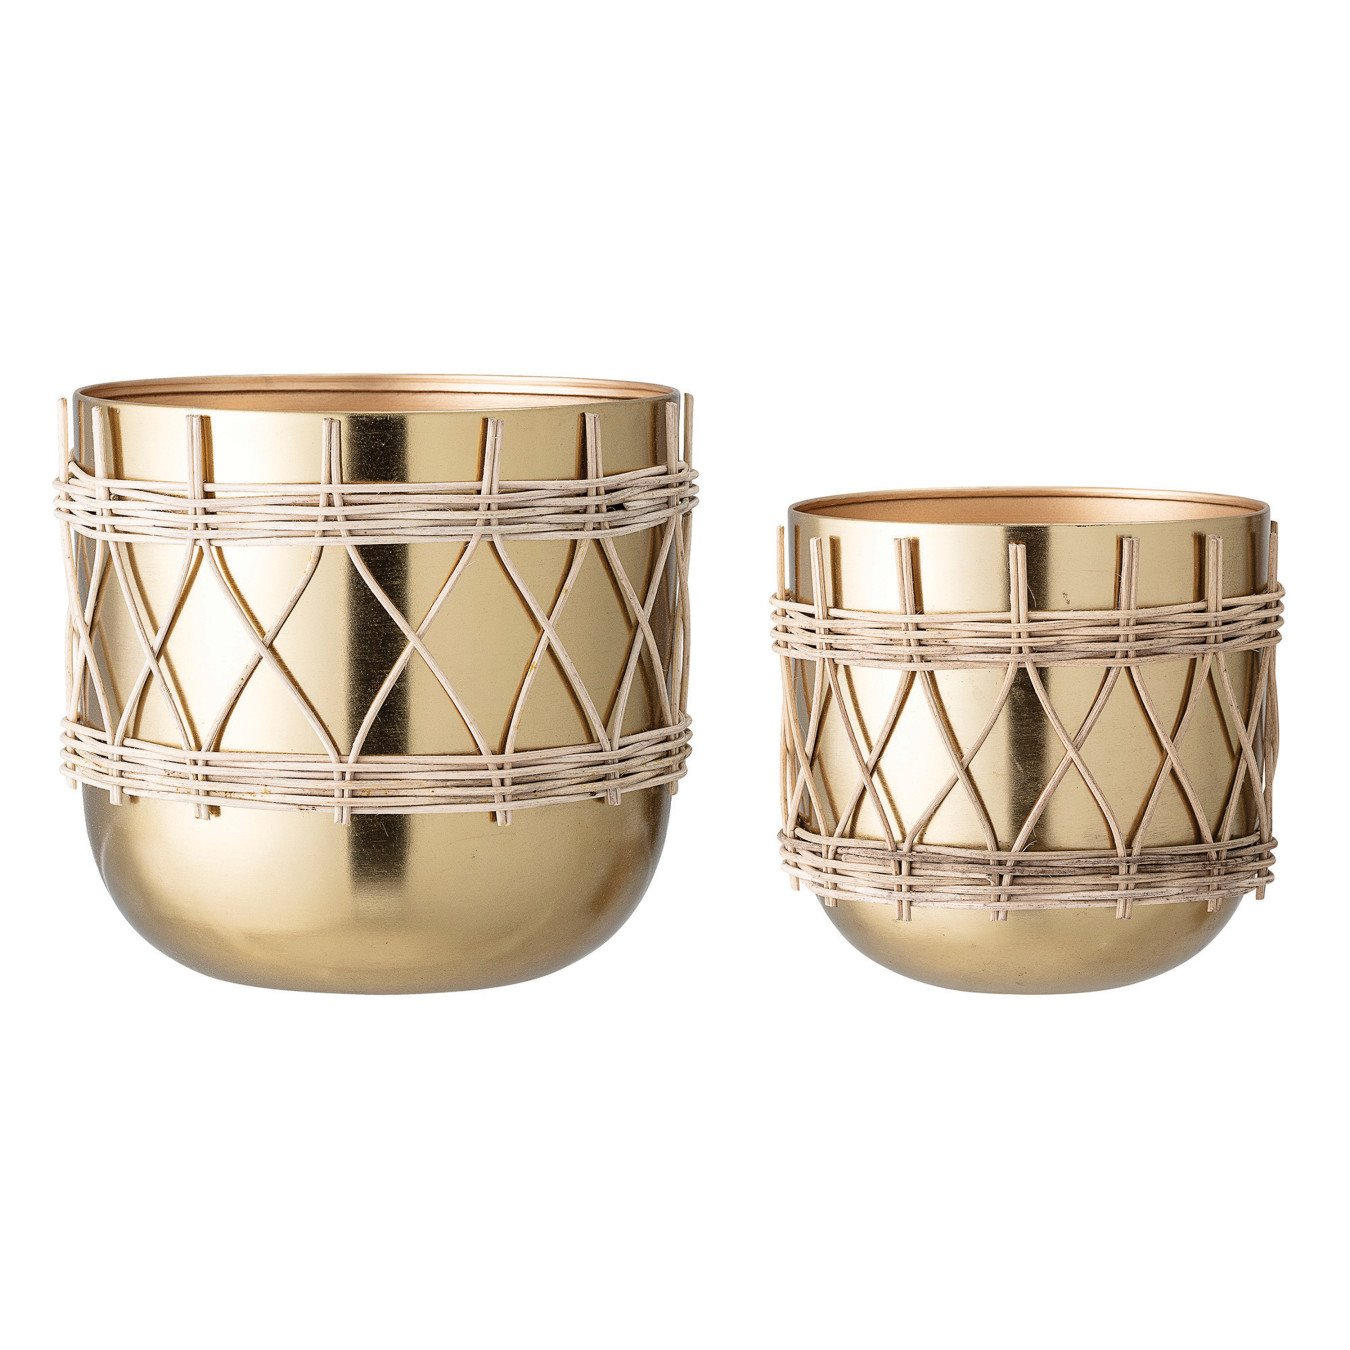 """7""""H & 9""""H Gold Electroplated Metal Planters with Woven Rattan Sleeve (Set of 2 Sizes/Hold 7"""" & 9"""" pots)"""